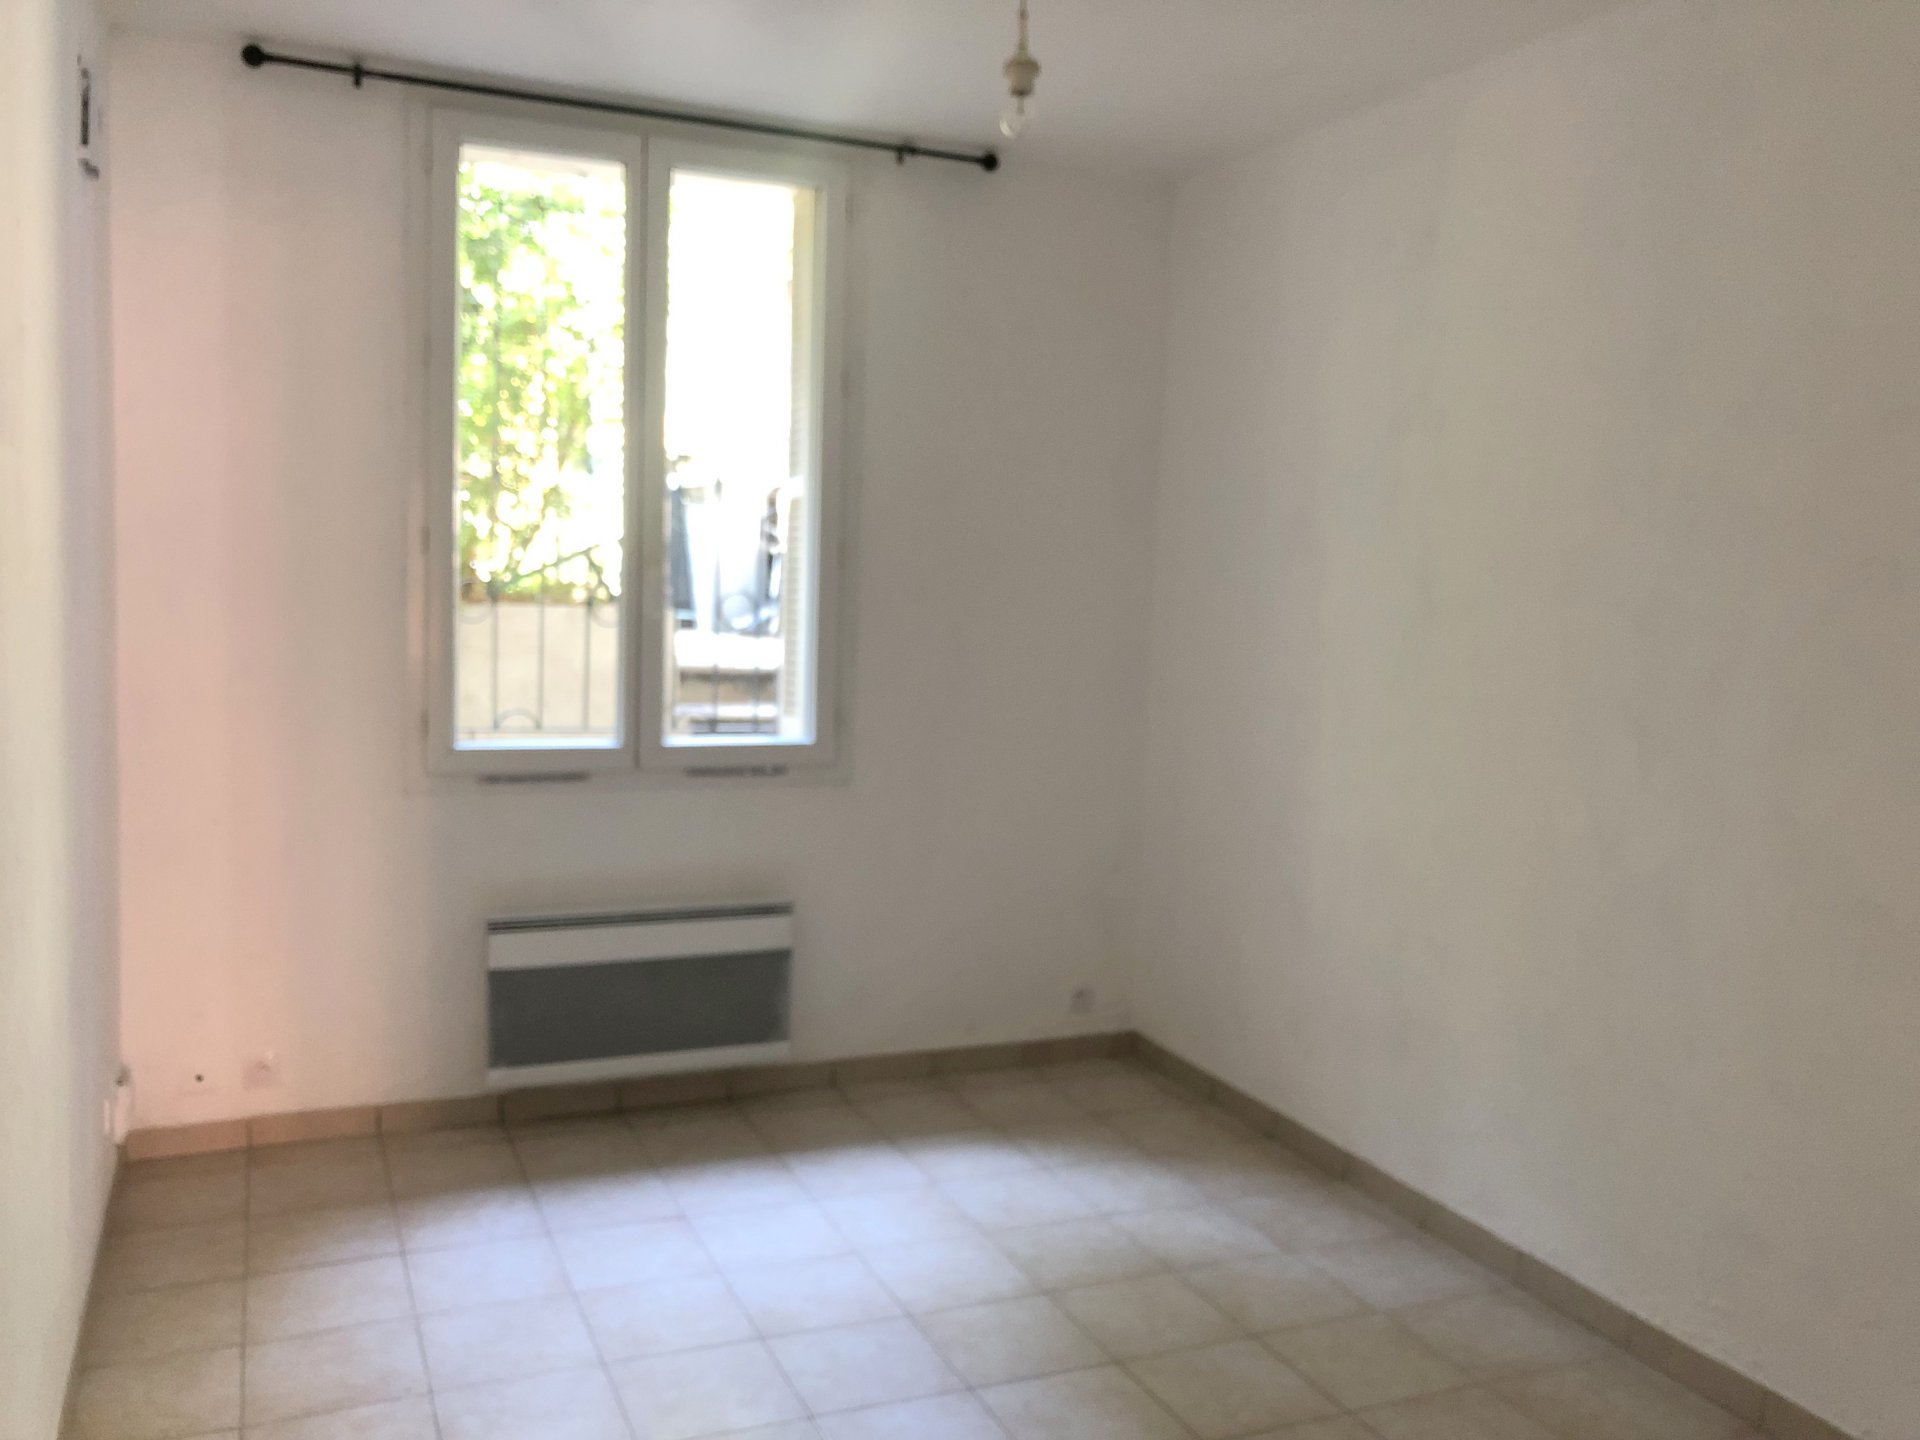 Location Nice, studio 27.75m² situé quartier Tnl